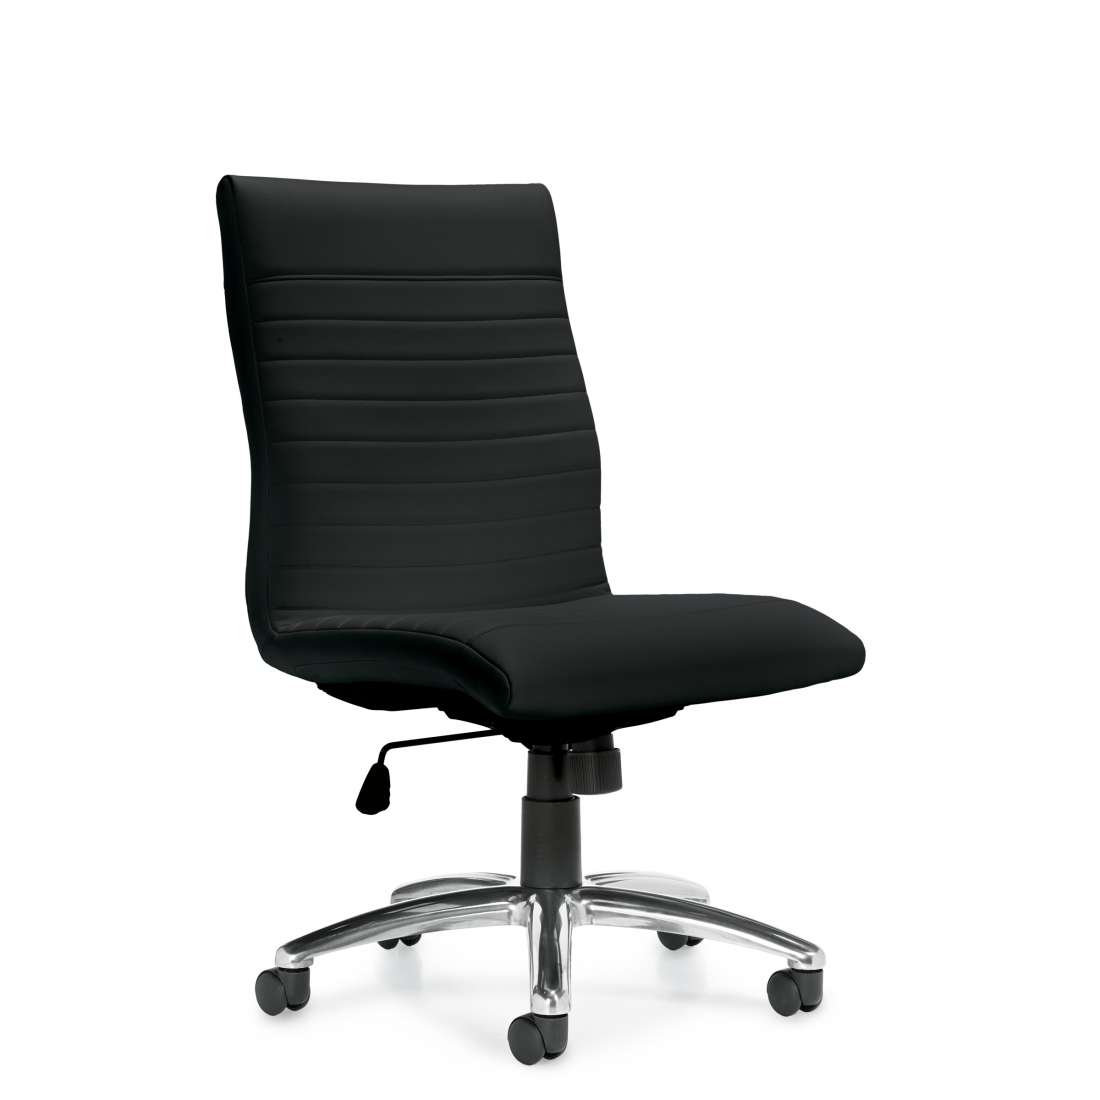 OTG Luxhide Executive Armless Chair #OTG11732